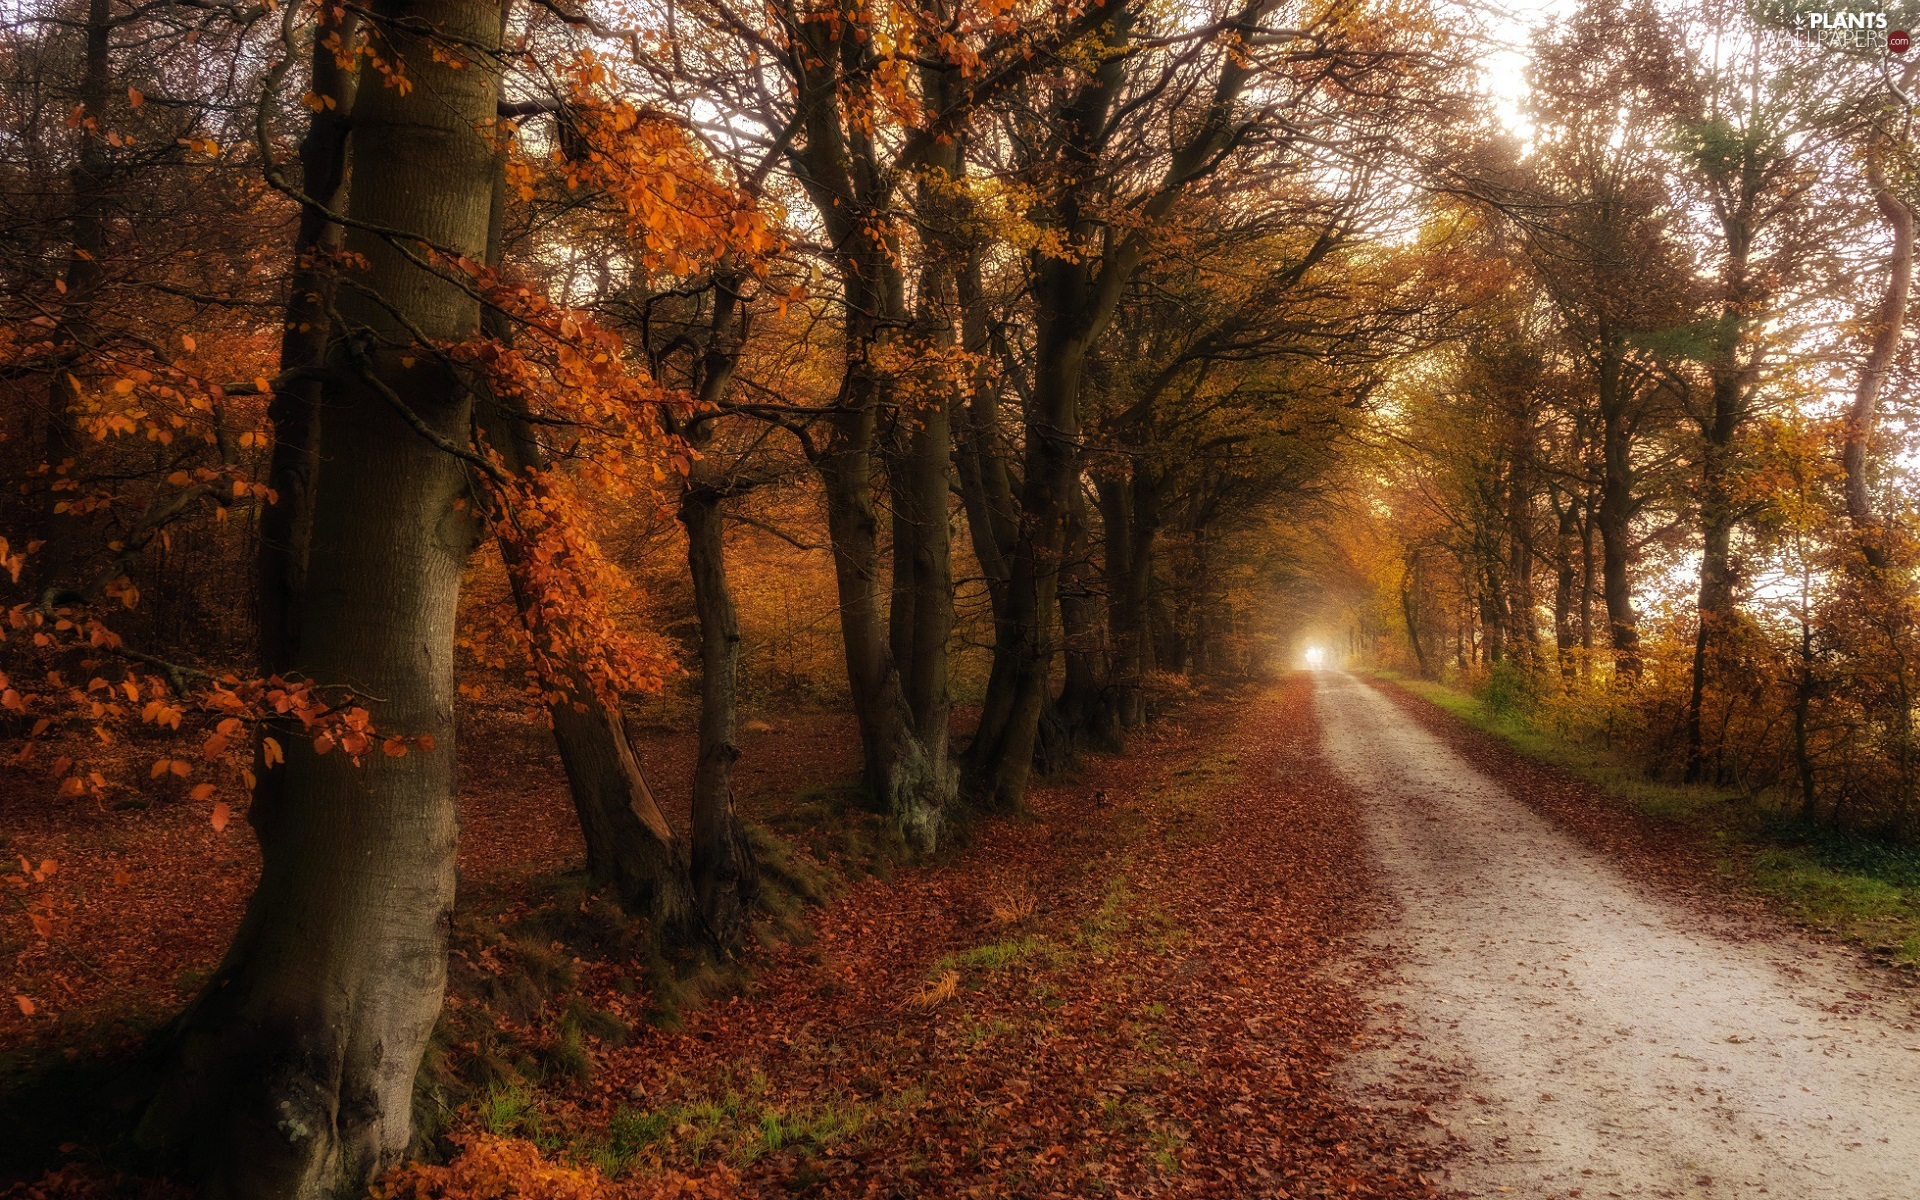 Way, trees, Leaf, viewes, Autumn, fallen, autumn